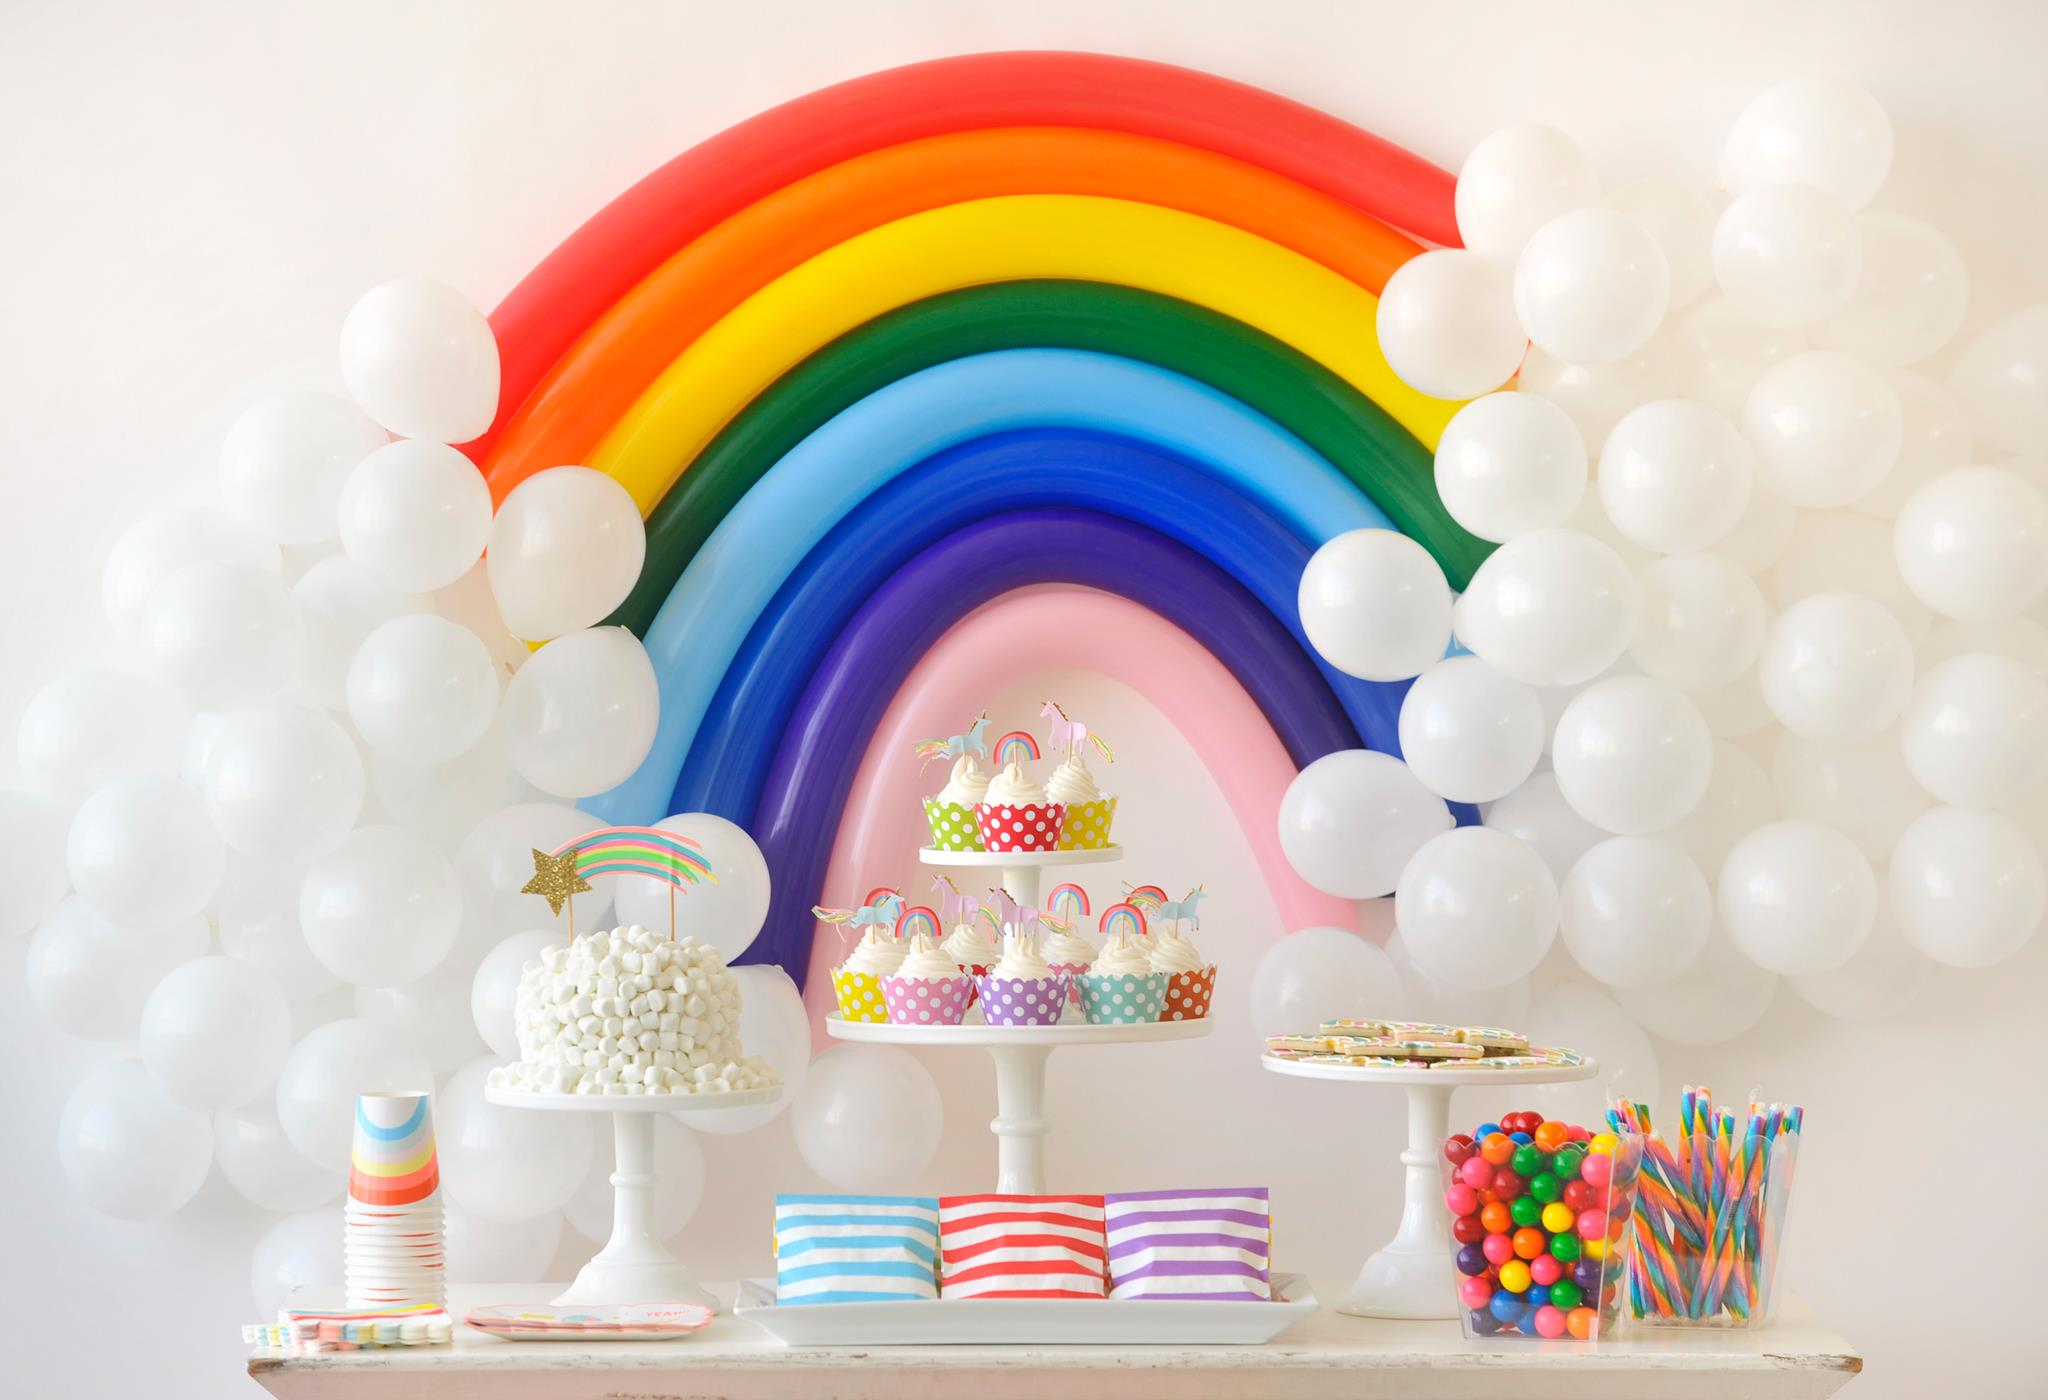 Over the Rainbow Kids Birthday Party DIY Rainbow Party Decor